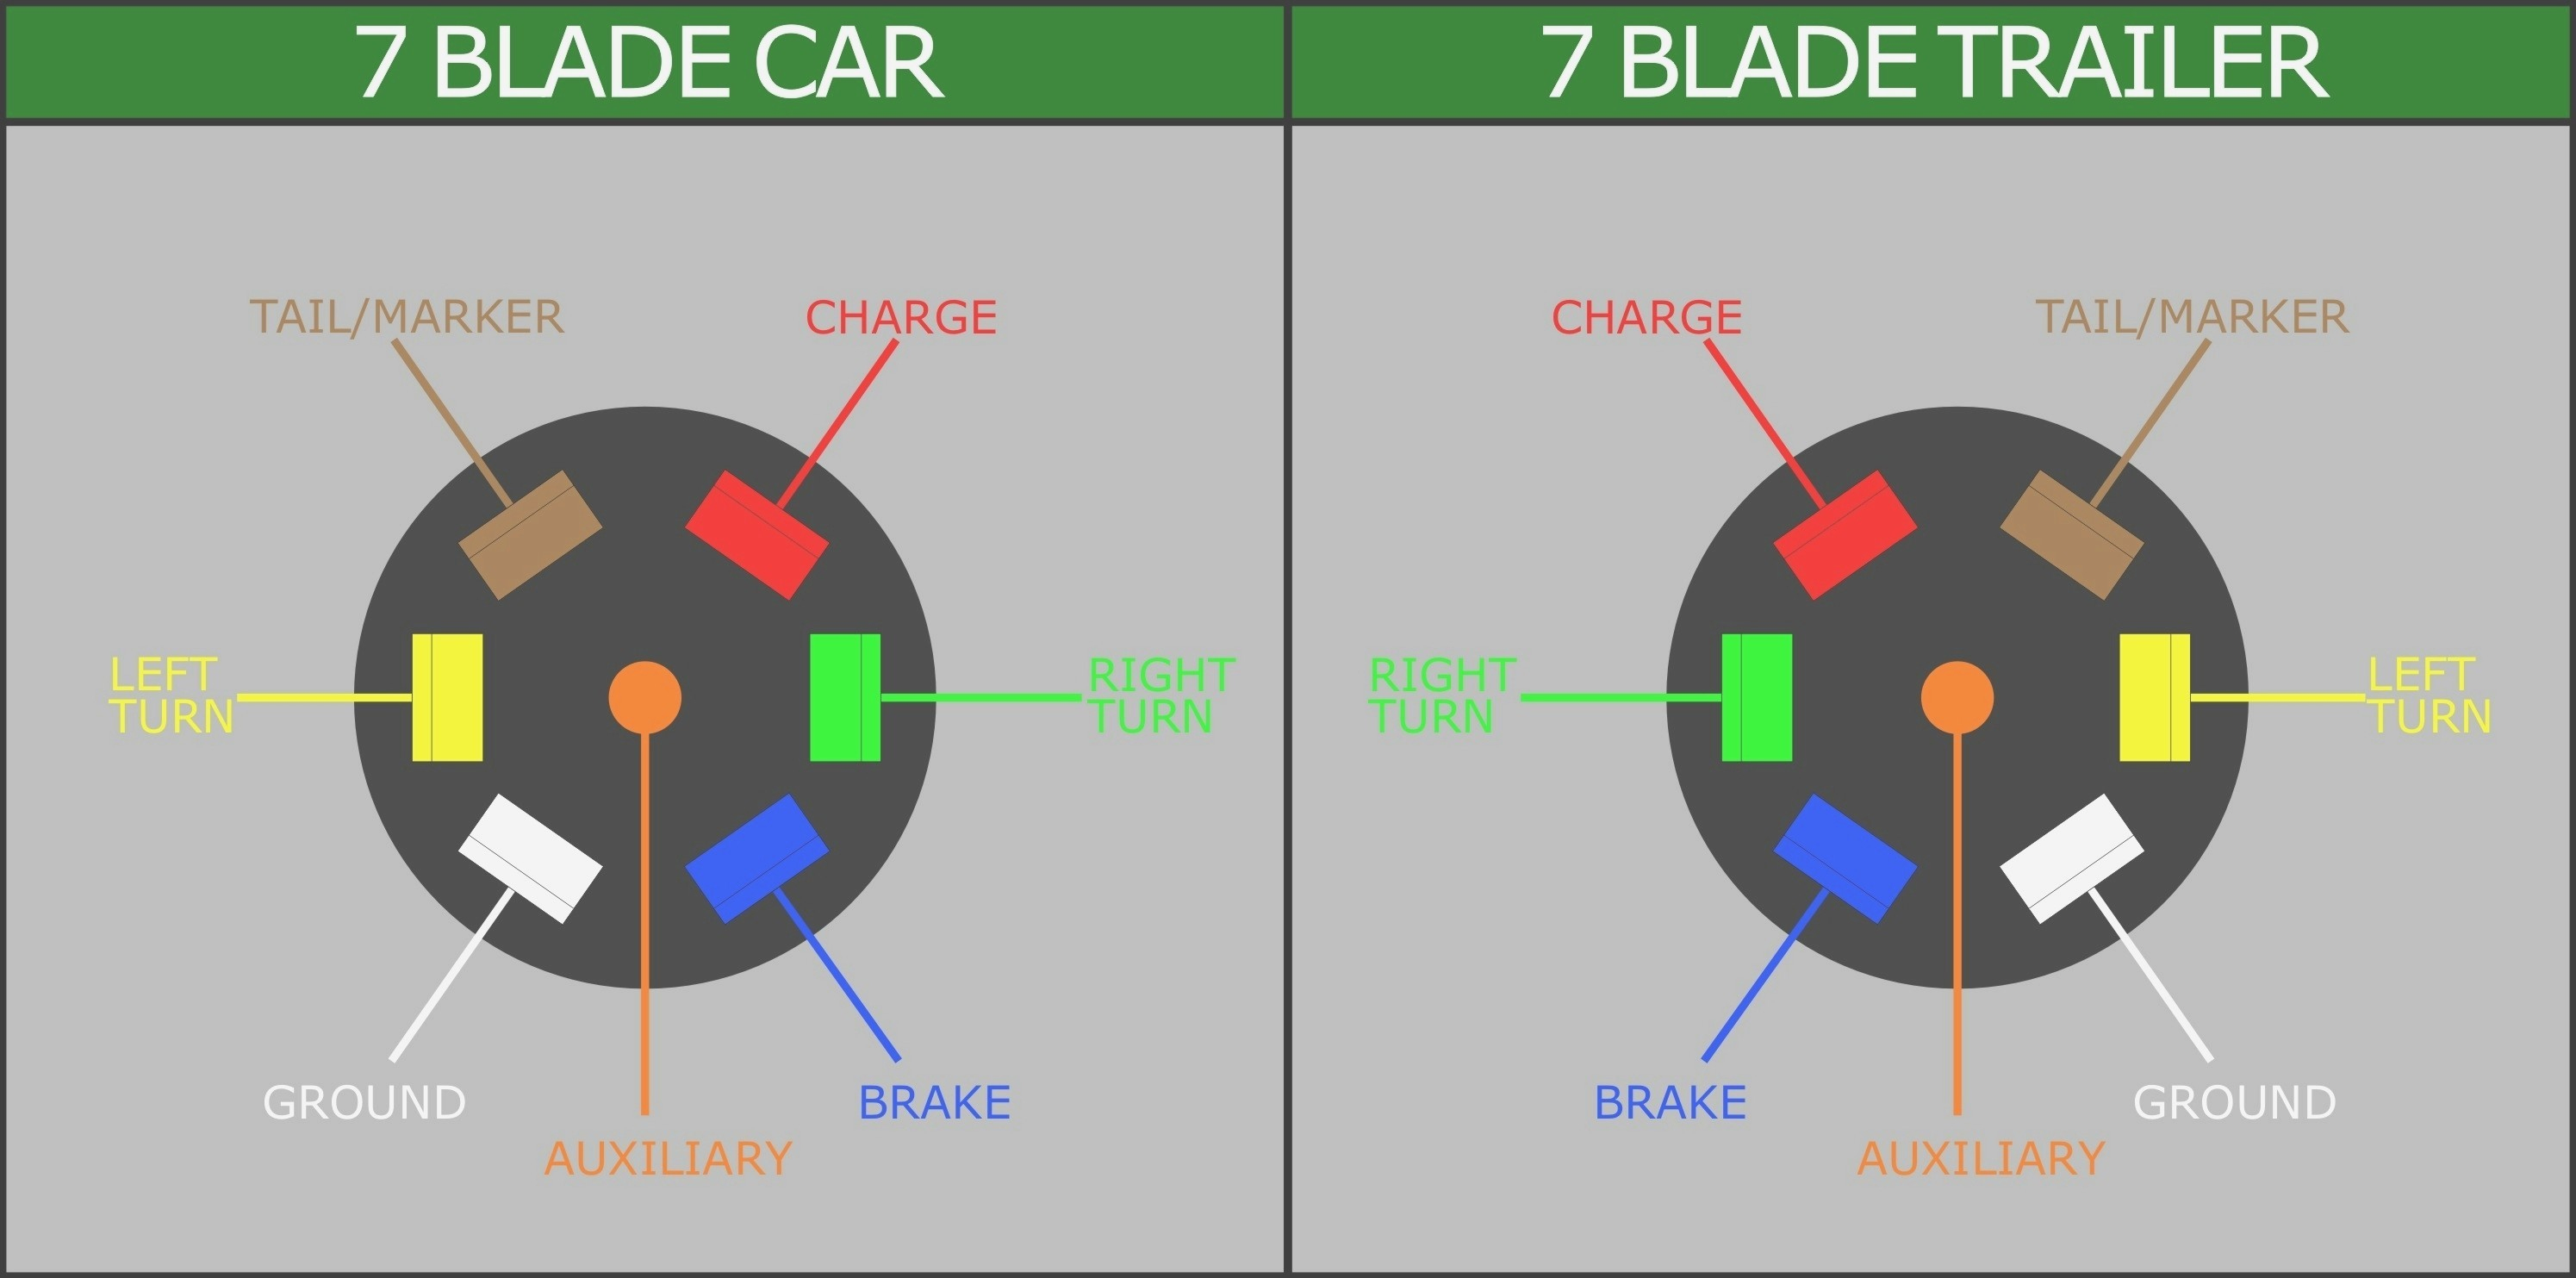 7 Blade Truck Wiring Diagram - Wiring Diagram Explained - Wiring Diagram Trailer Connector